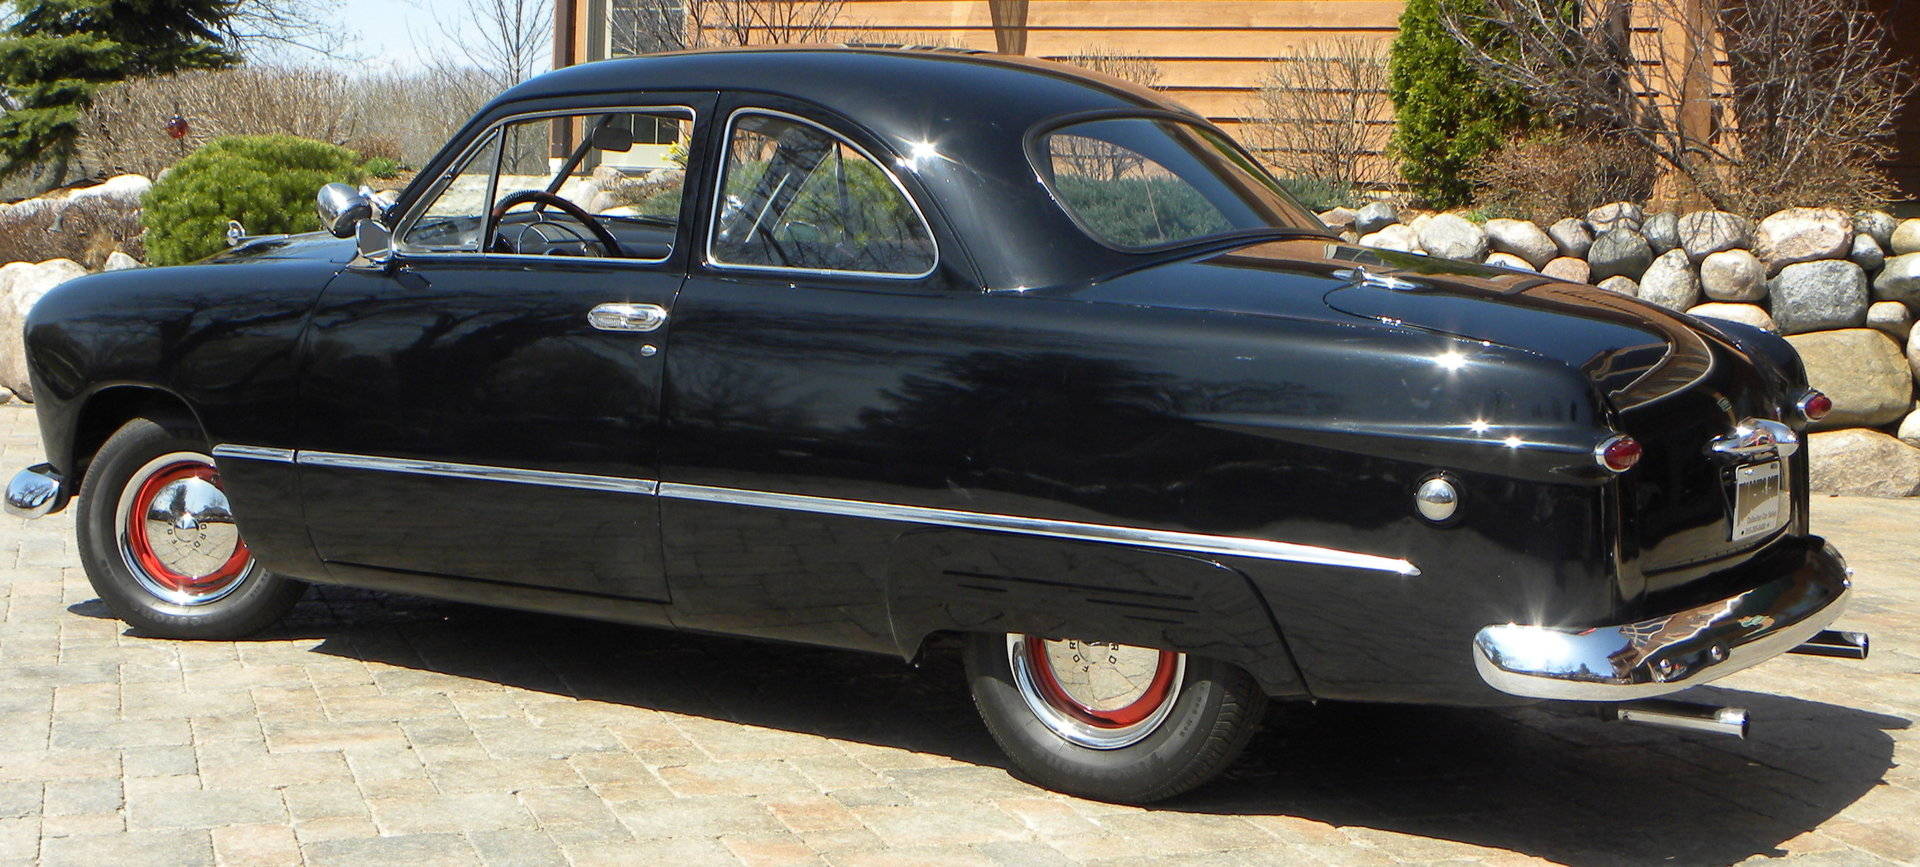 1949 Ford Club Coupe For Sale 17110 Mcg